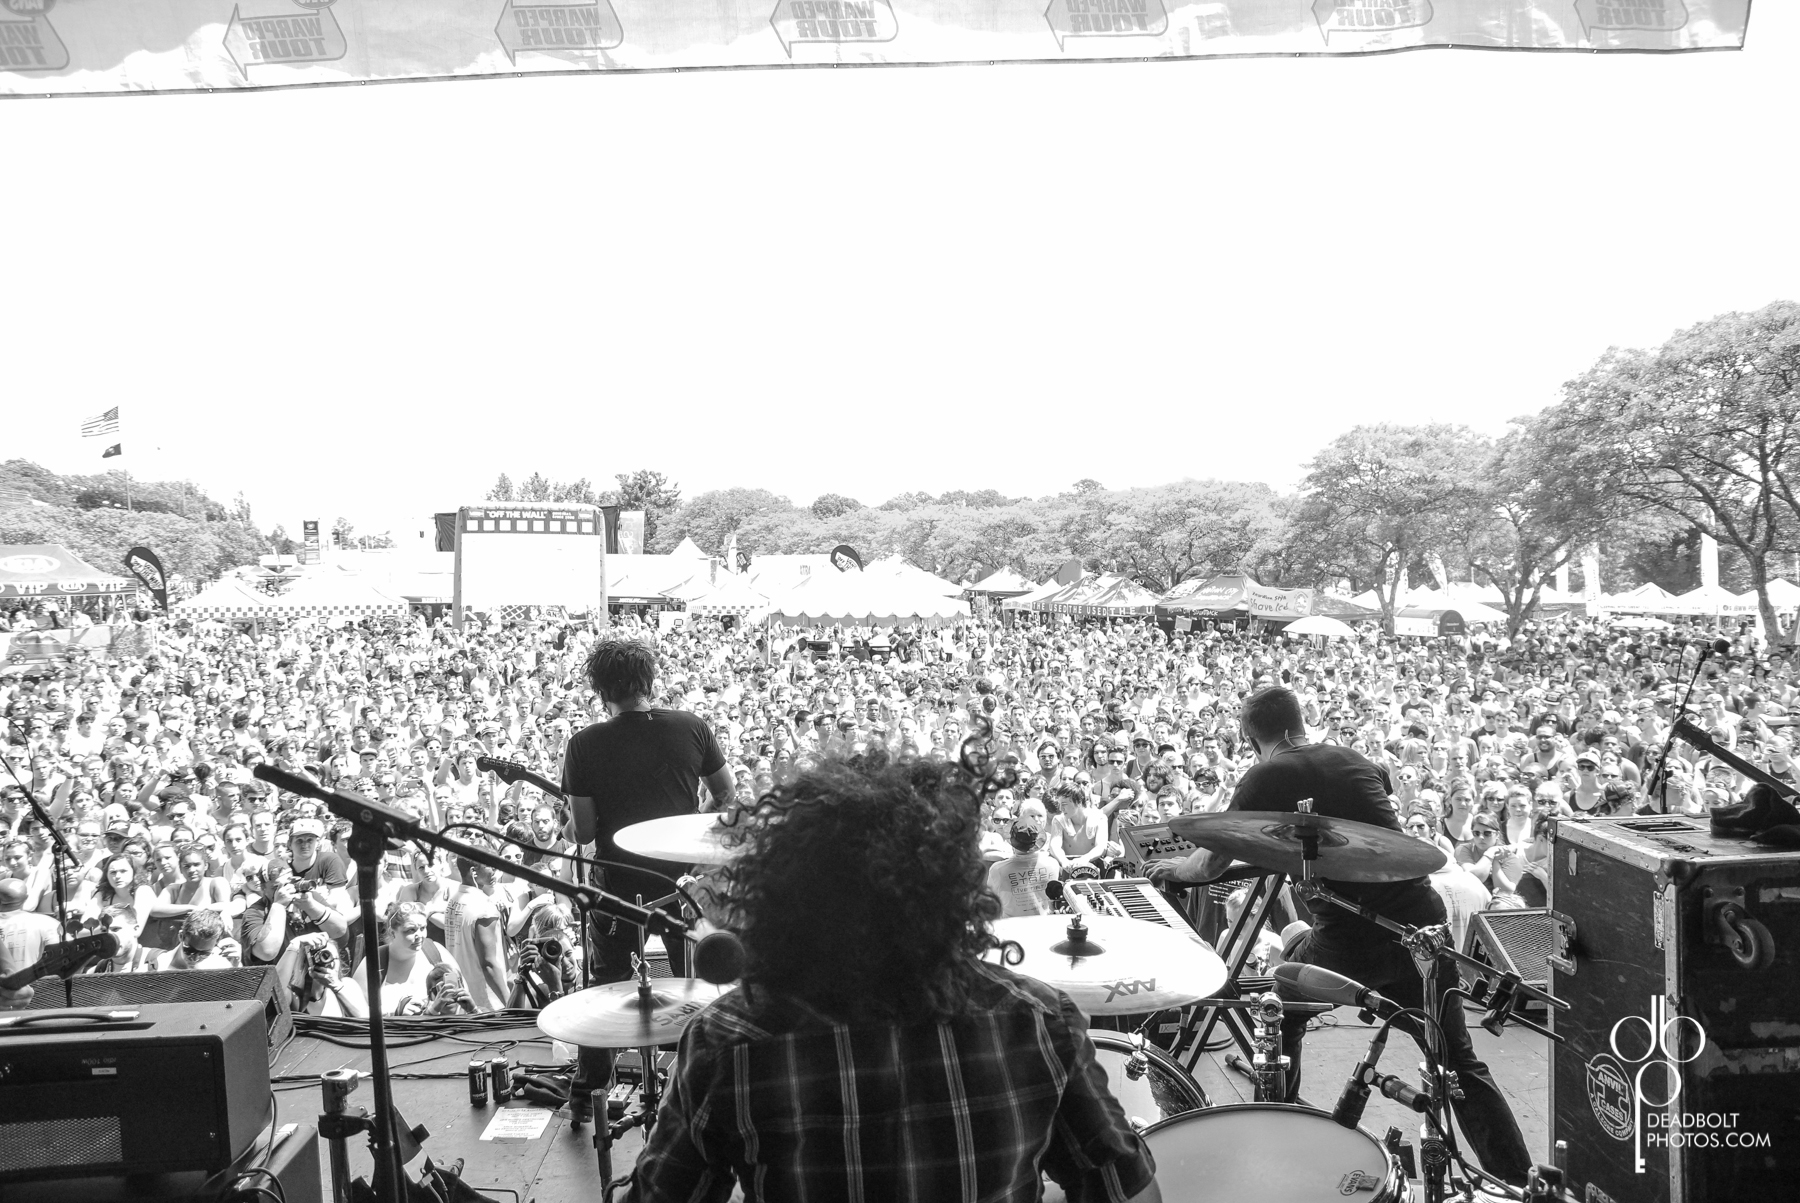 Motion City Soundtrack in front of a full crowd for Warped Tour 2013 and PNC Bank Arts Center.